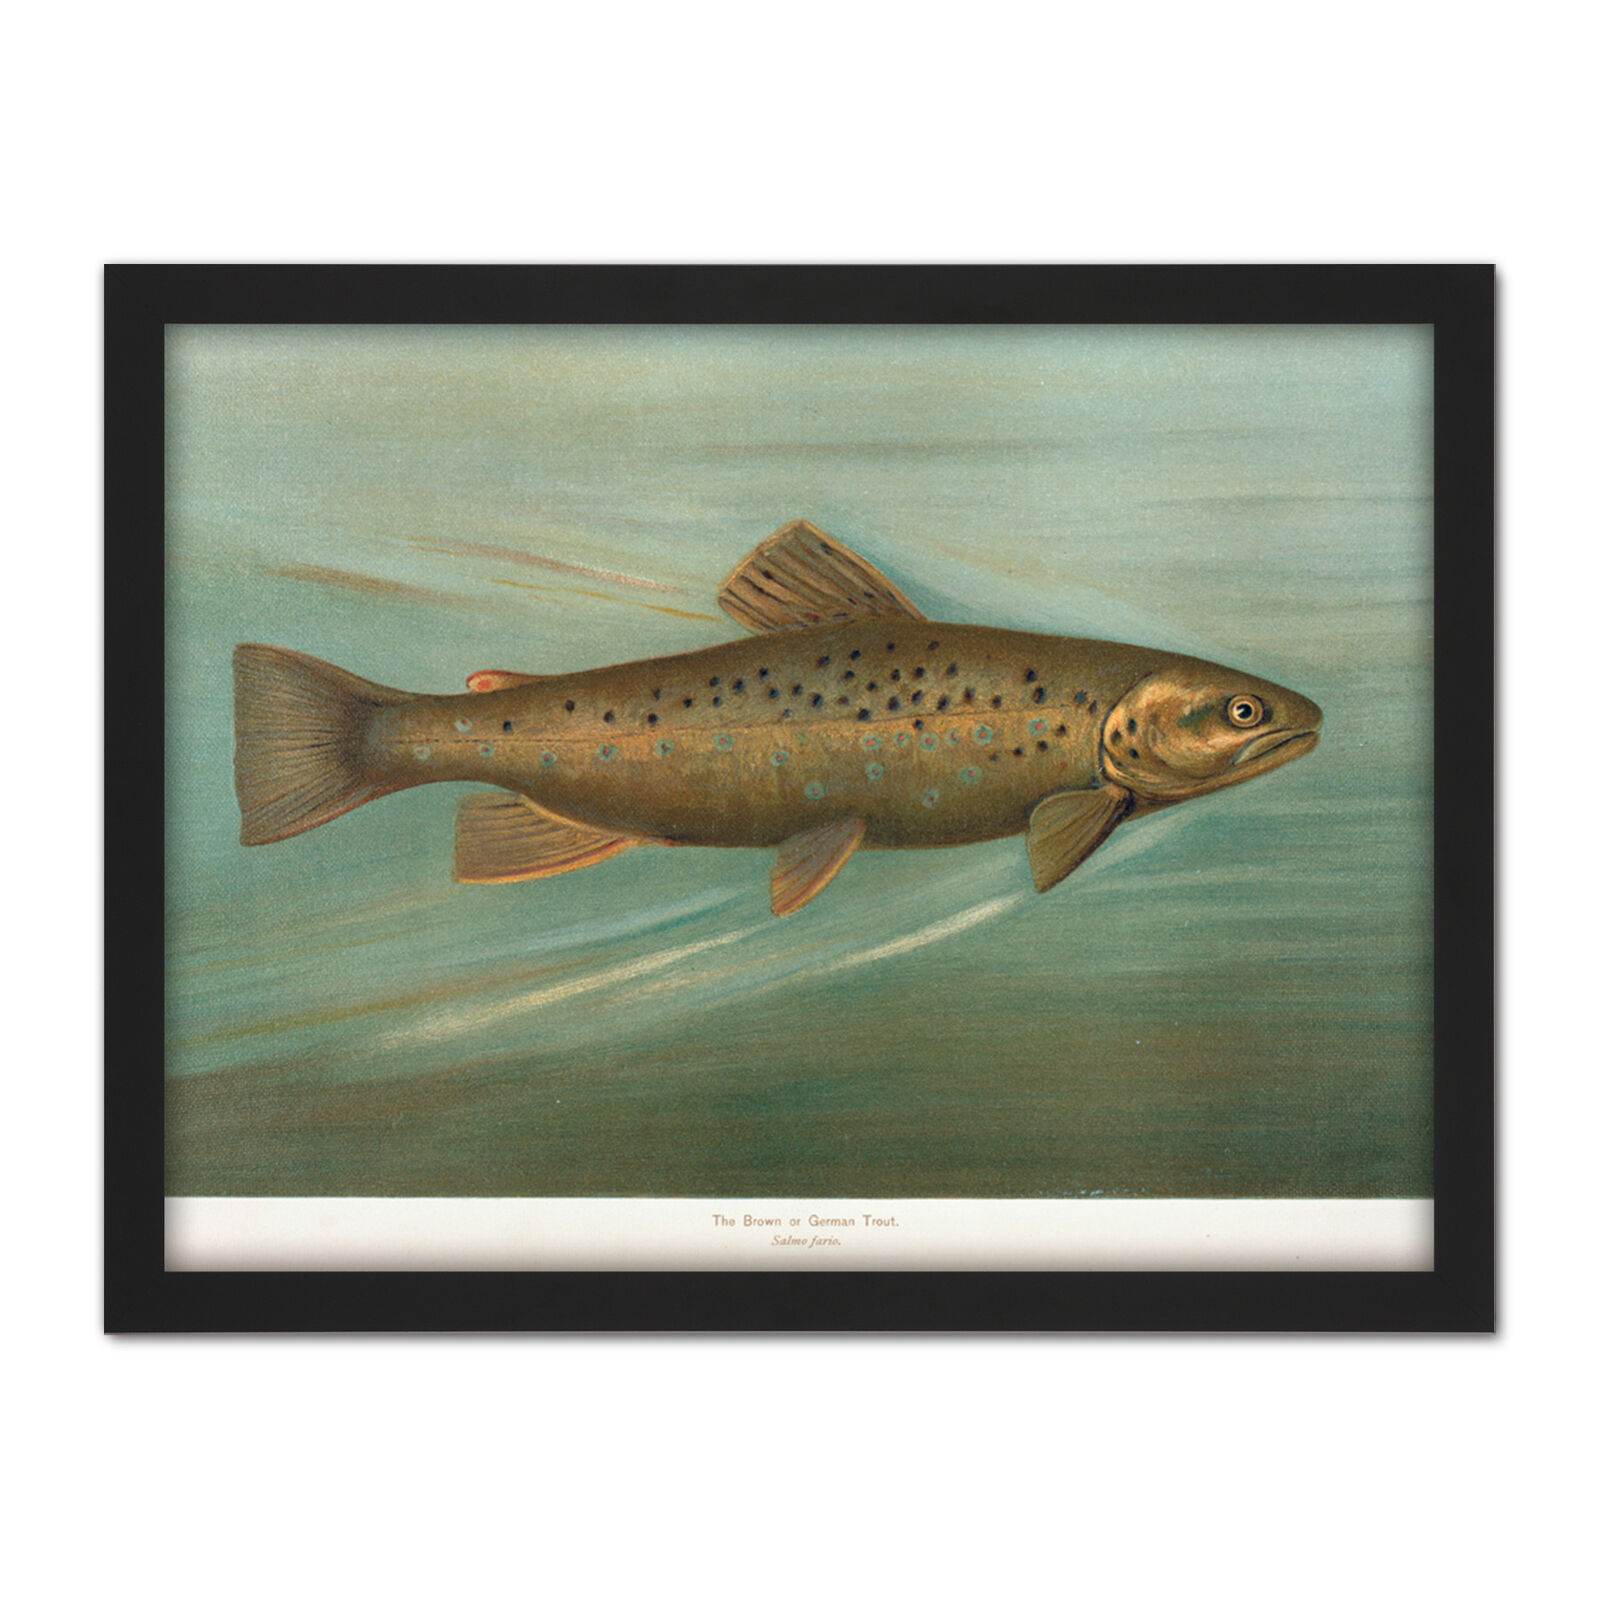 Petrie North American Fishes braun Trout Framed Wall Art Print 18X24